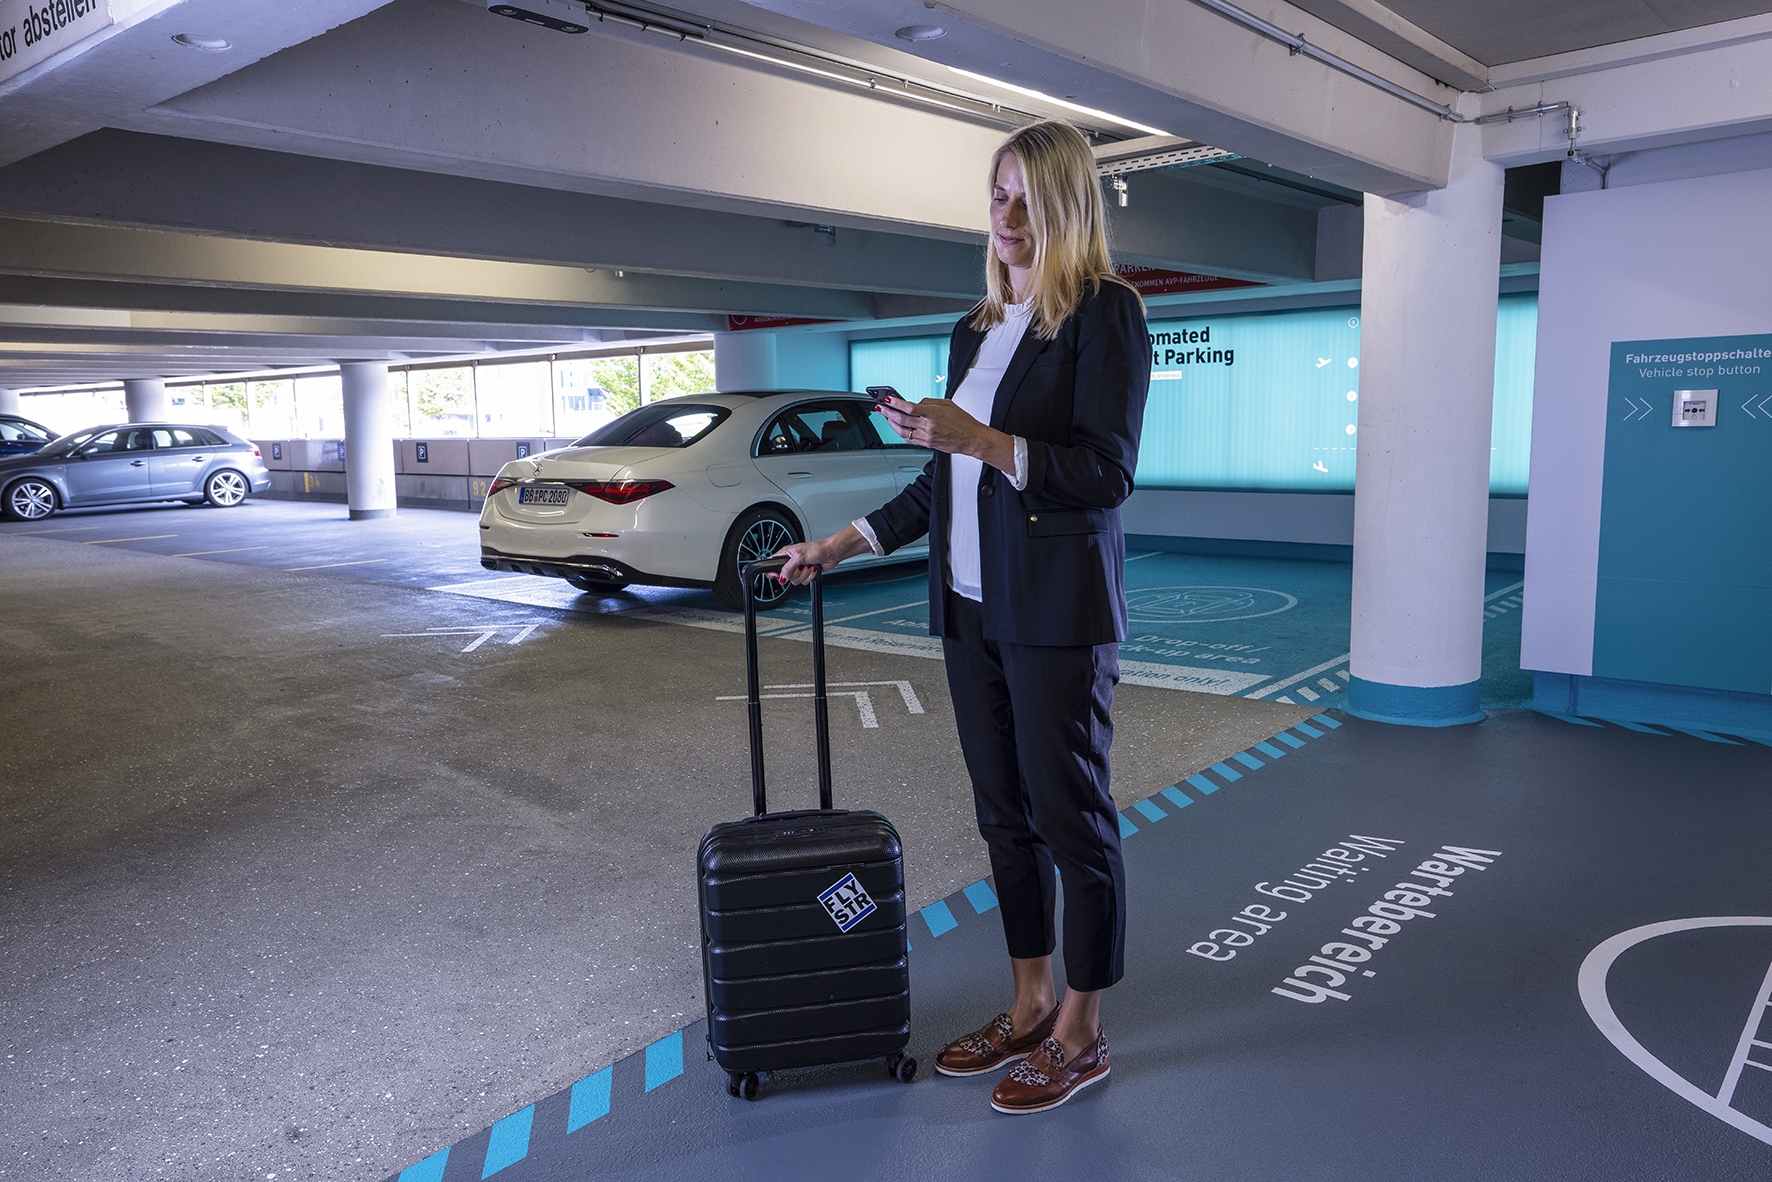 Automated Valet Parking at the parking garage P6 at Stuttgart airport